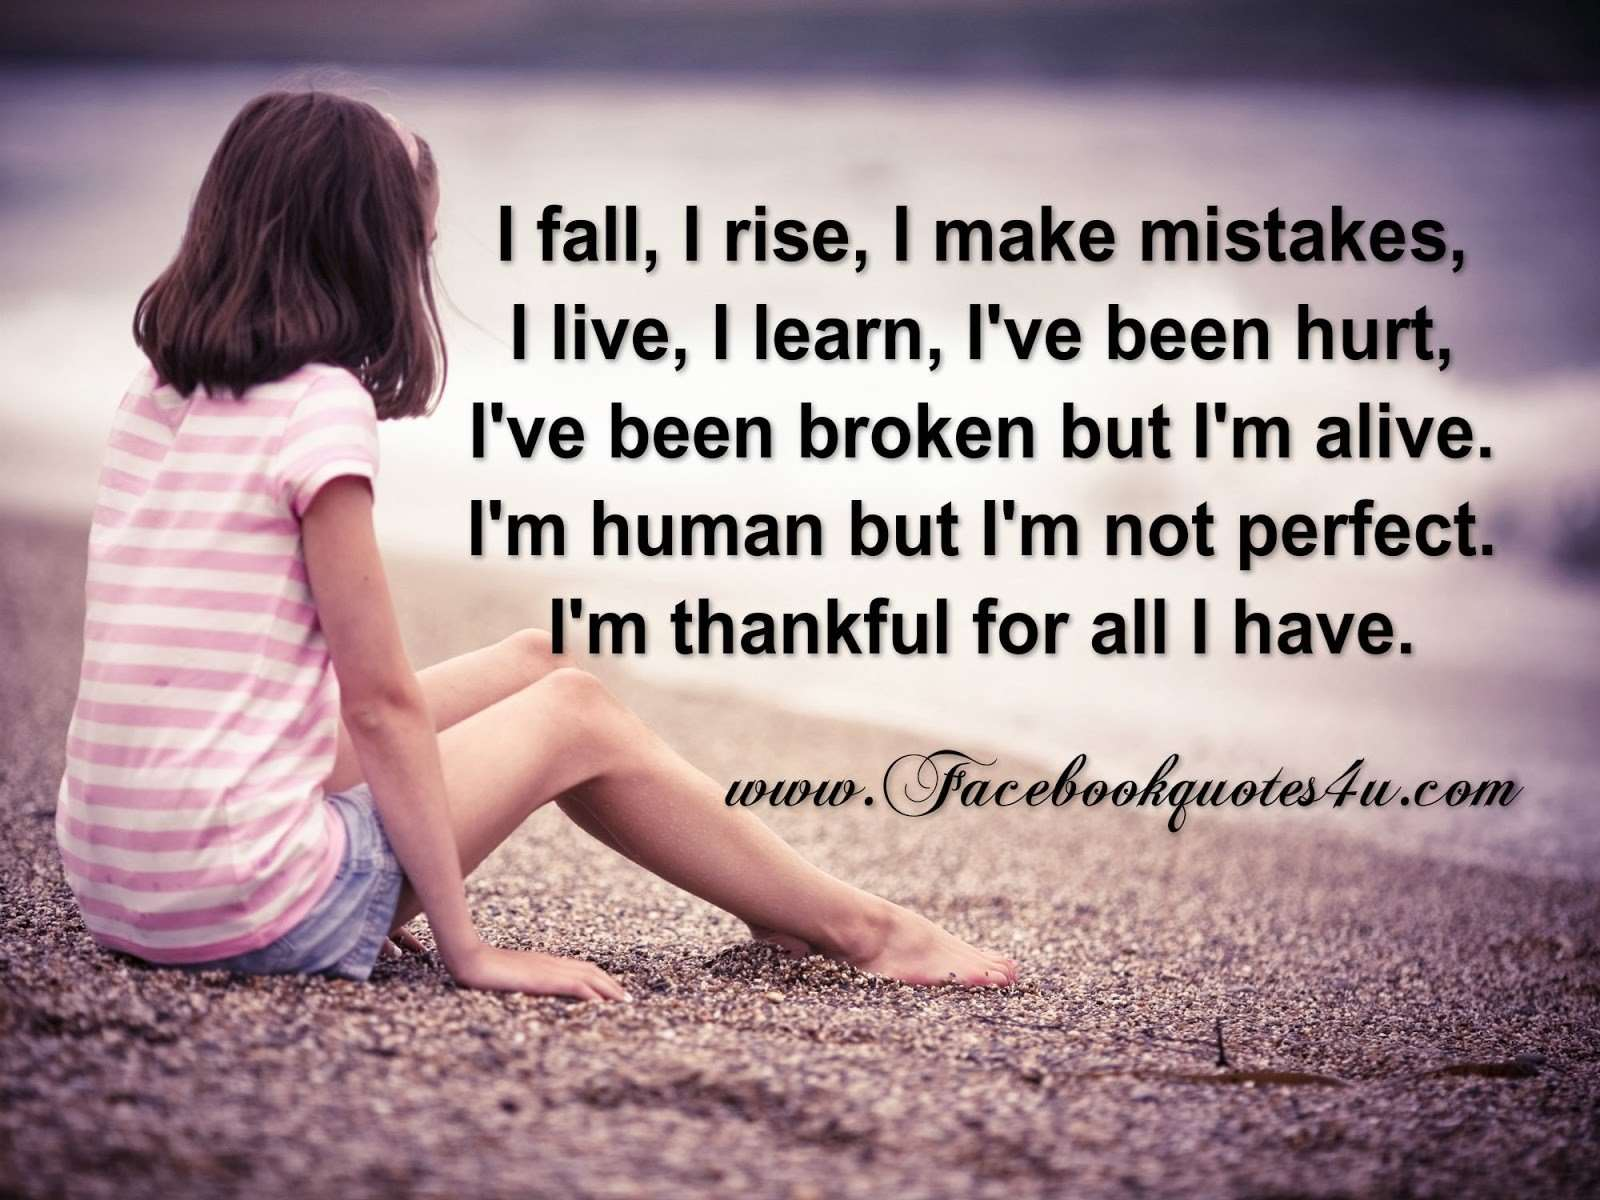 i fall i rise i make mistake i live i learn i have been hurt i have been broken but u am alive i am human but i am not perfect i am thankful for all i have